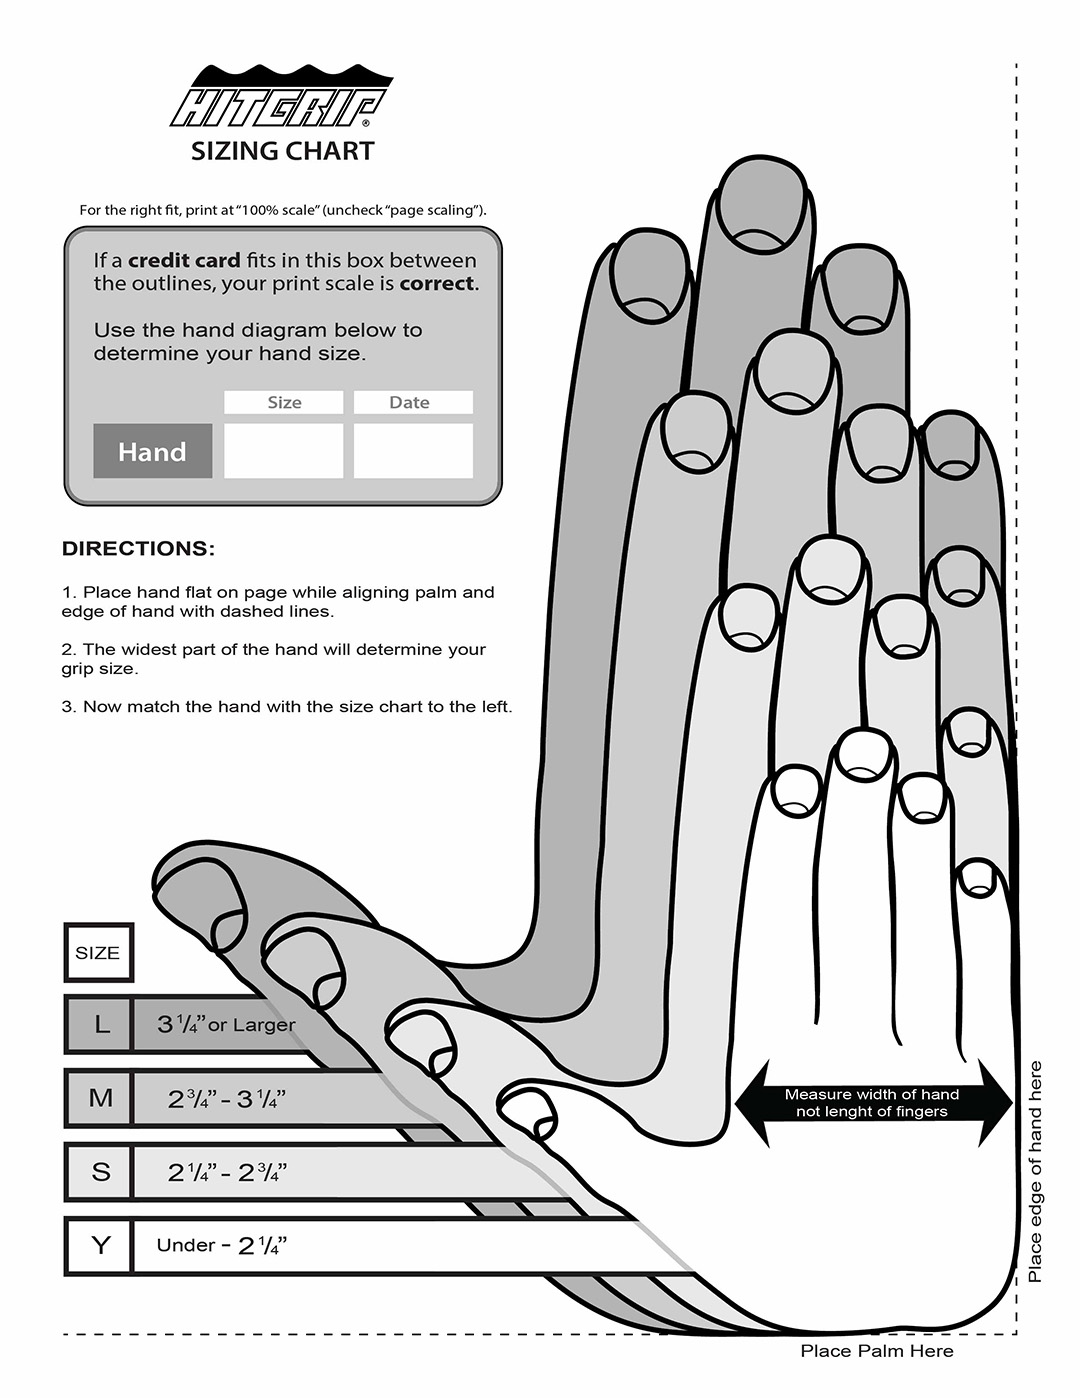 Hitgrip_Sizing_Chart_Downloadable_v01_WEB.jpg